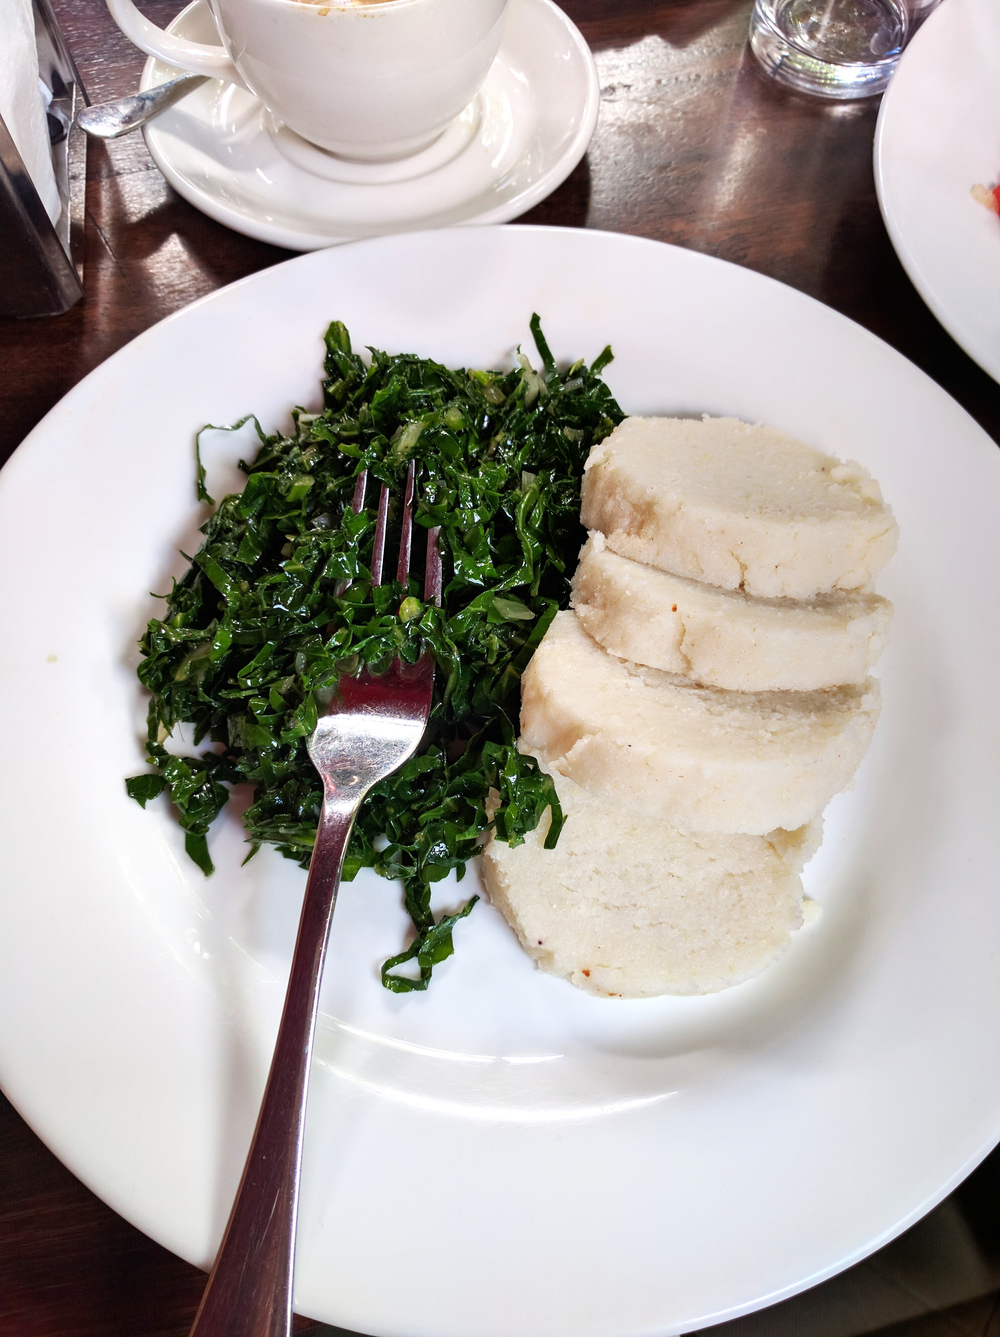 We tried some traditional Kenyan food: ugali, a dish made of cornmeal cooked in boiling liquid to a dough-like consistency, and sukuma wiki, a kale-like green.